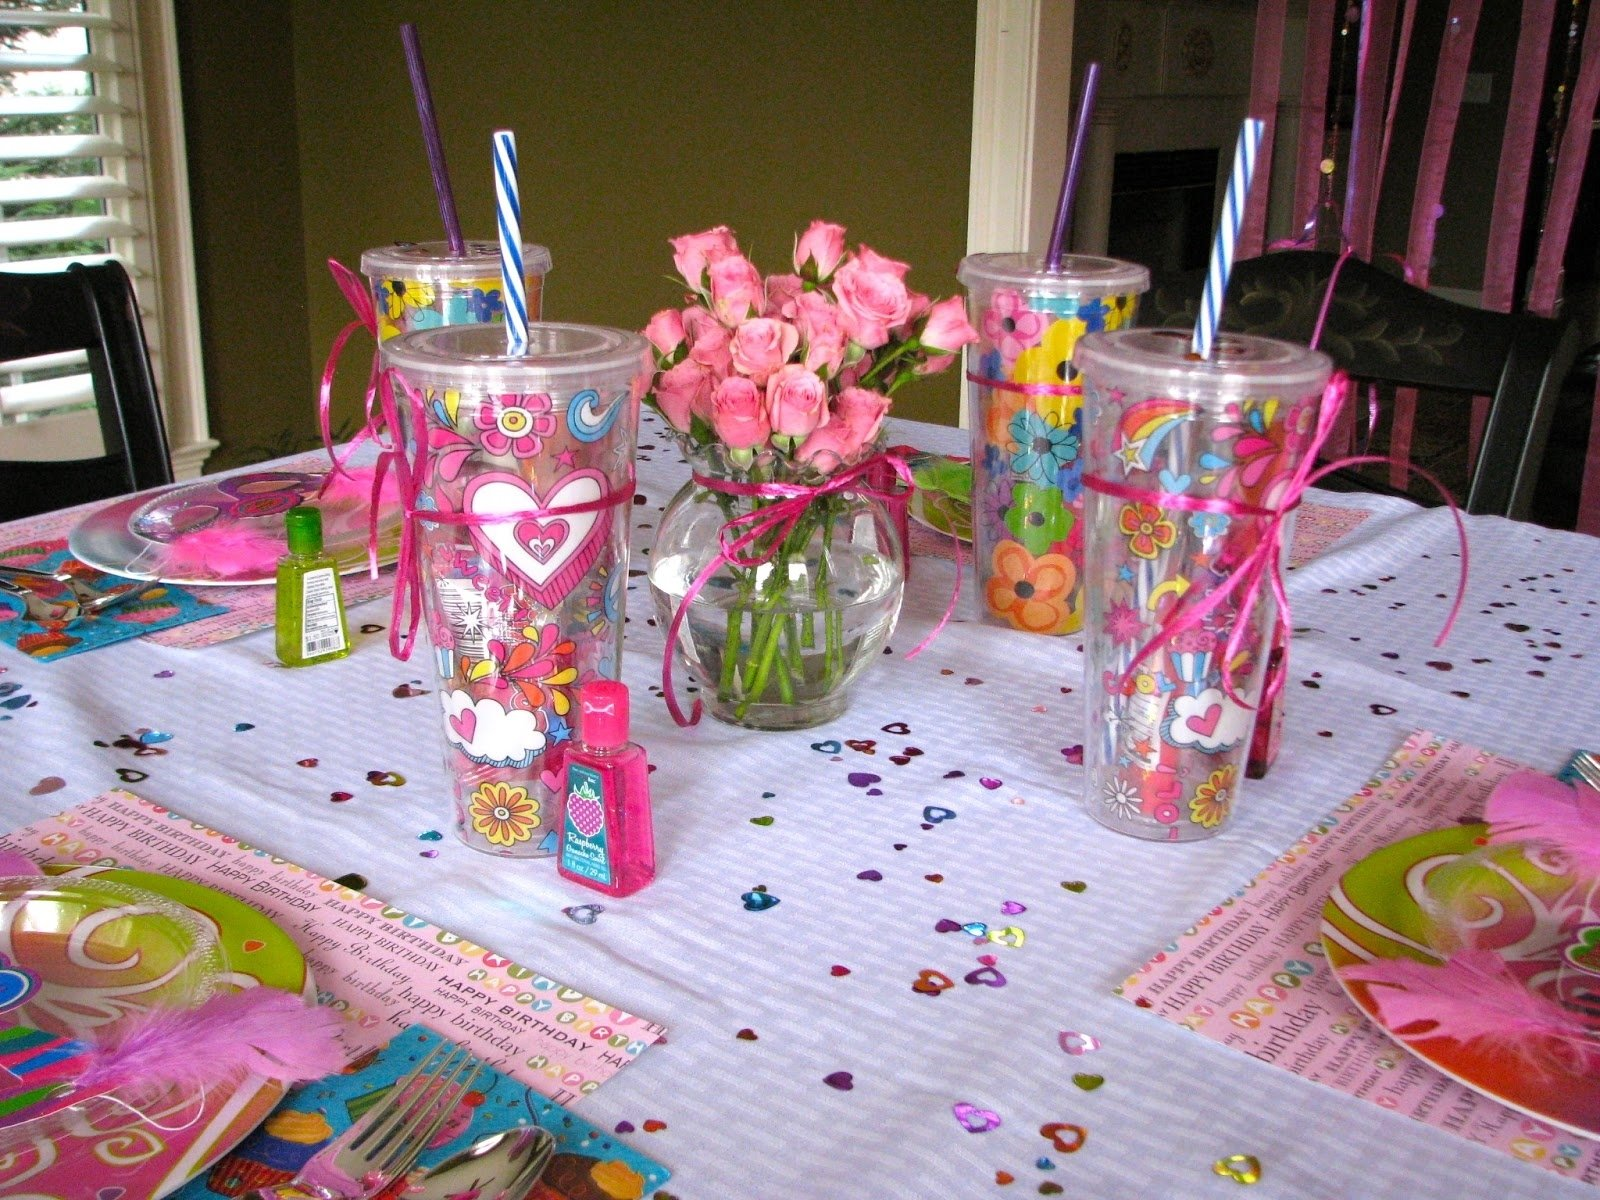 10 Attractive Birthday Party Ideas For 8 Year Old Girl best girl birthday party theme birthday party ideas best birthday 5 2021